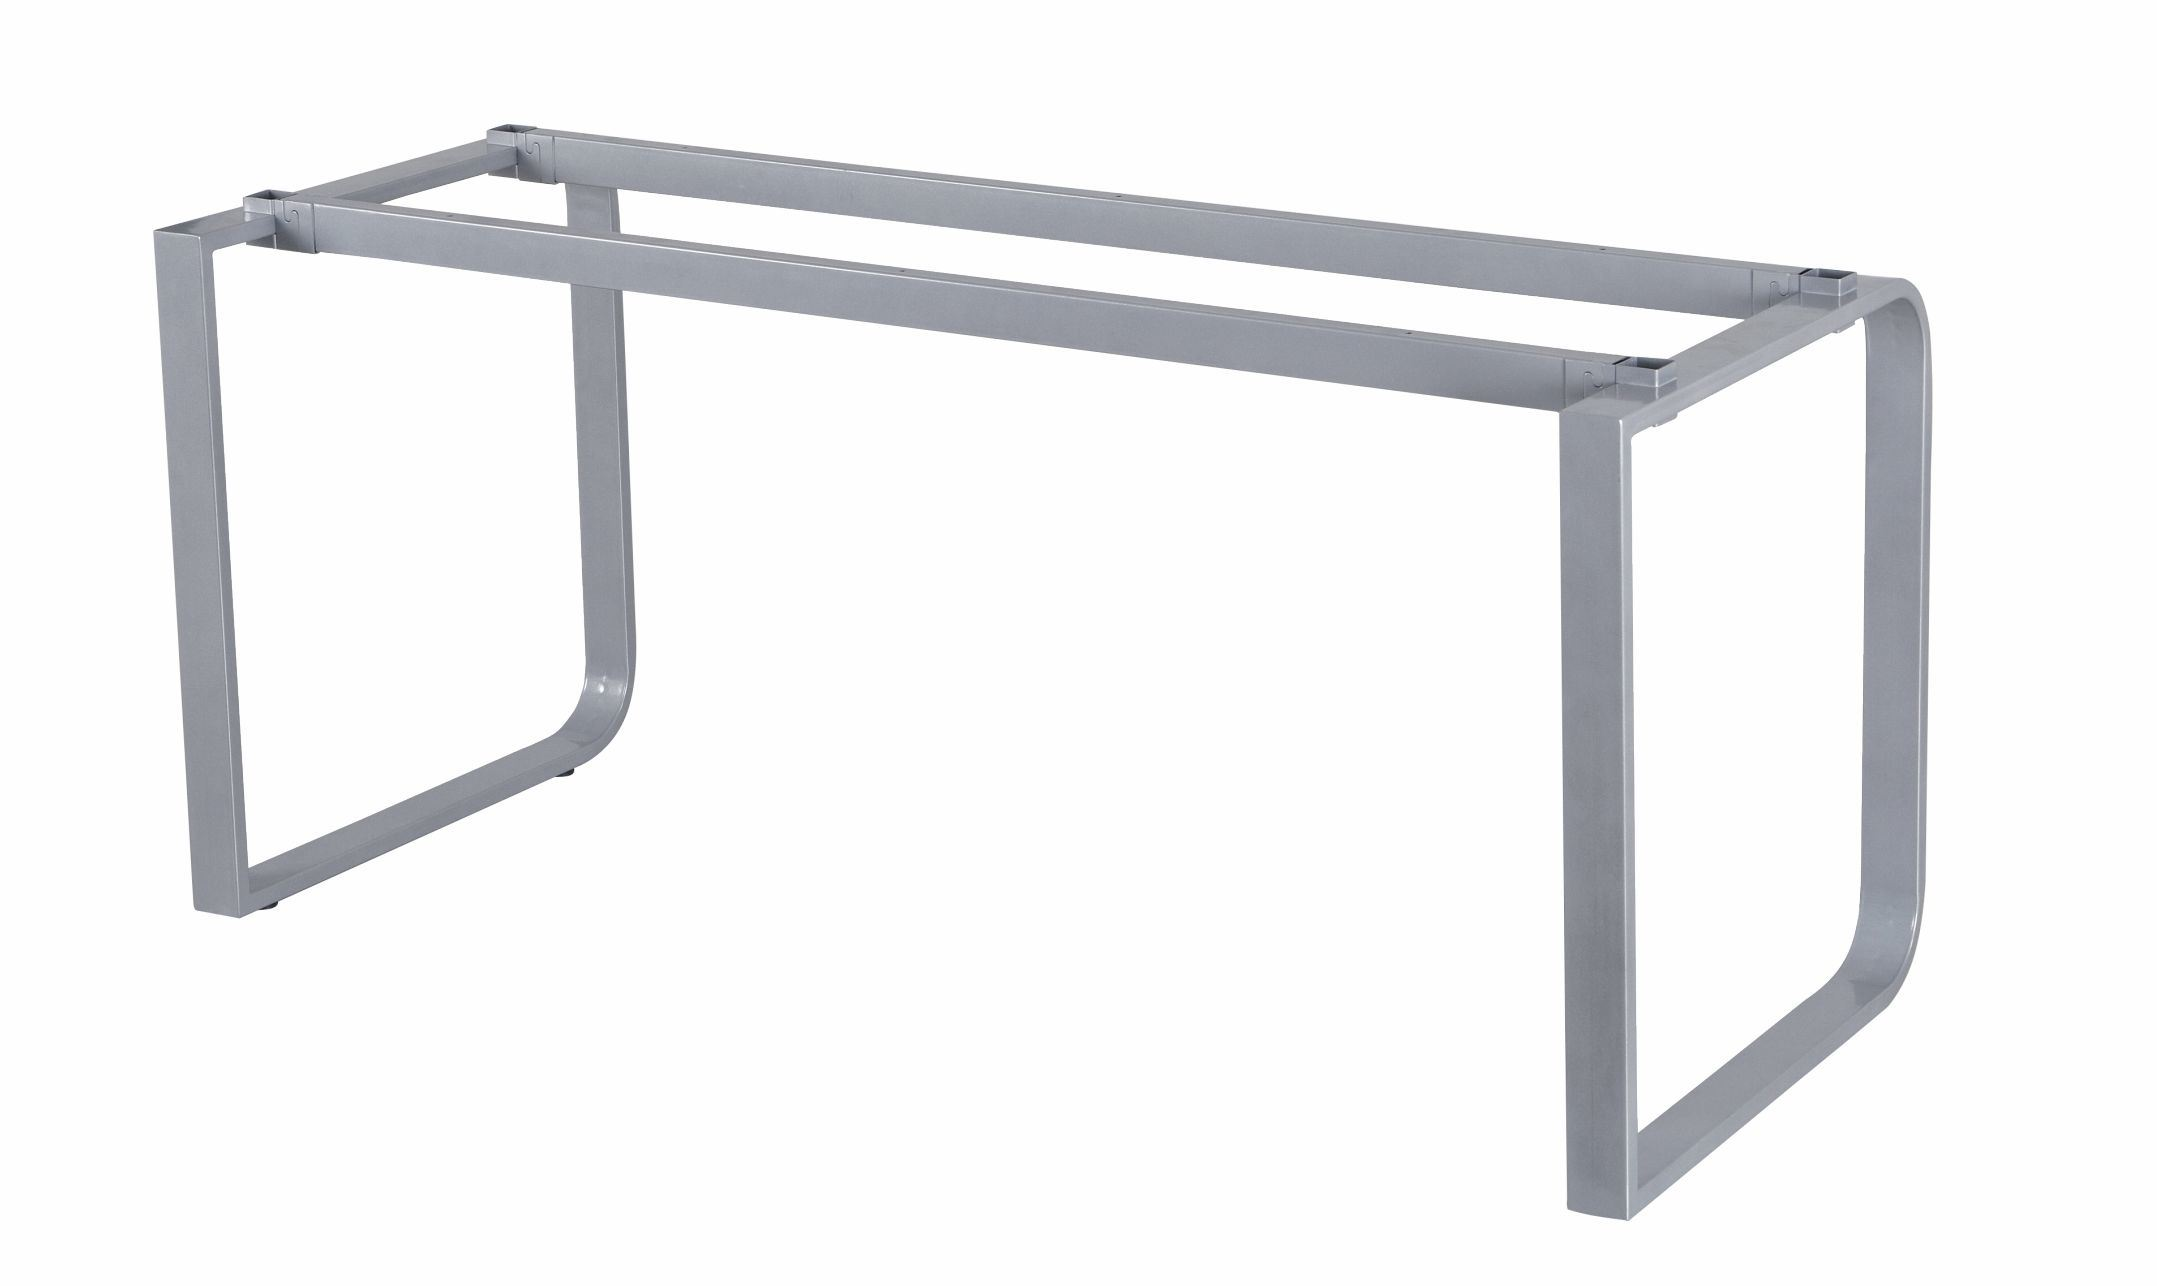 China metal table frame jc 8235 china metal table leg for How to display picture frames on a table